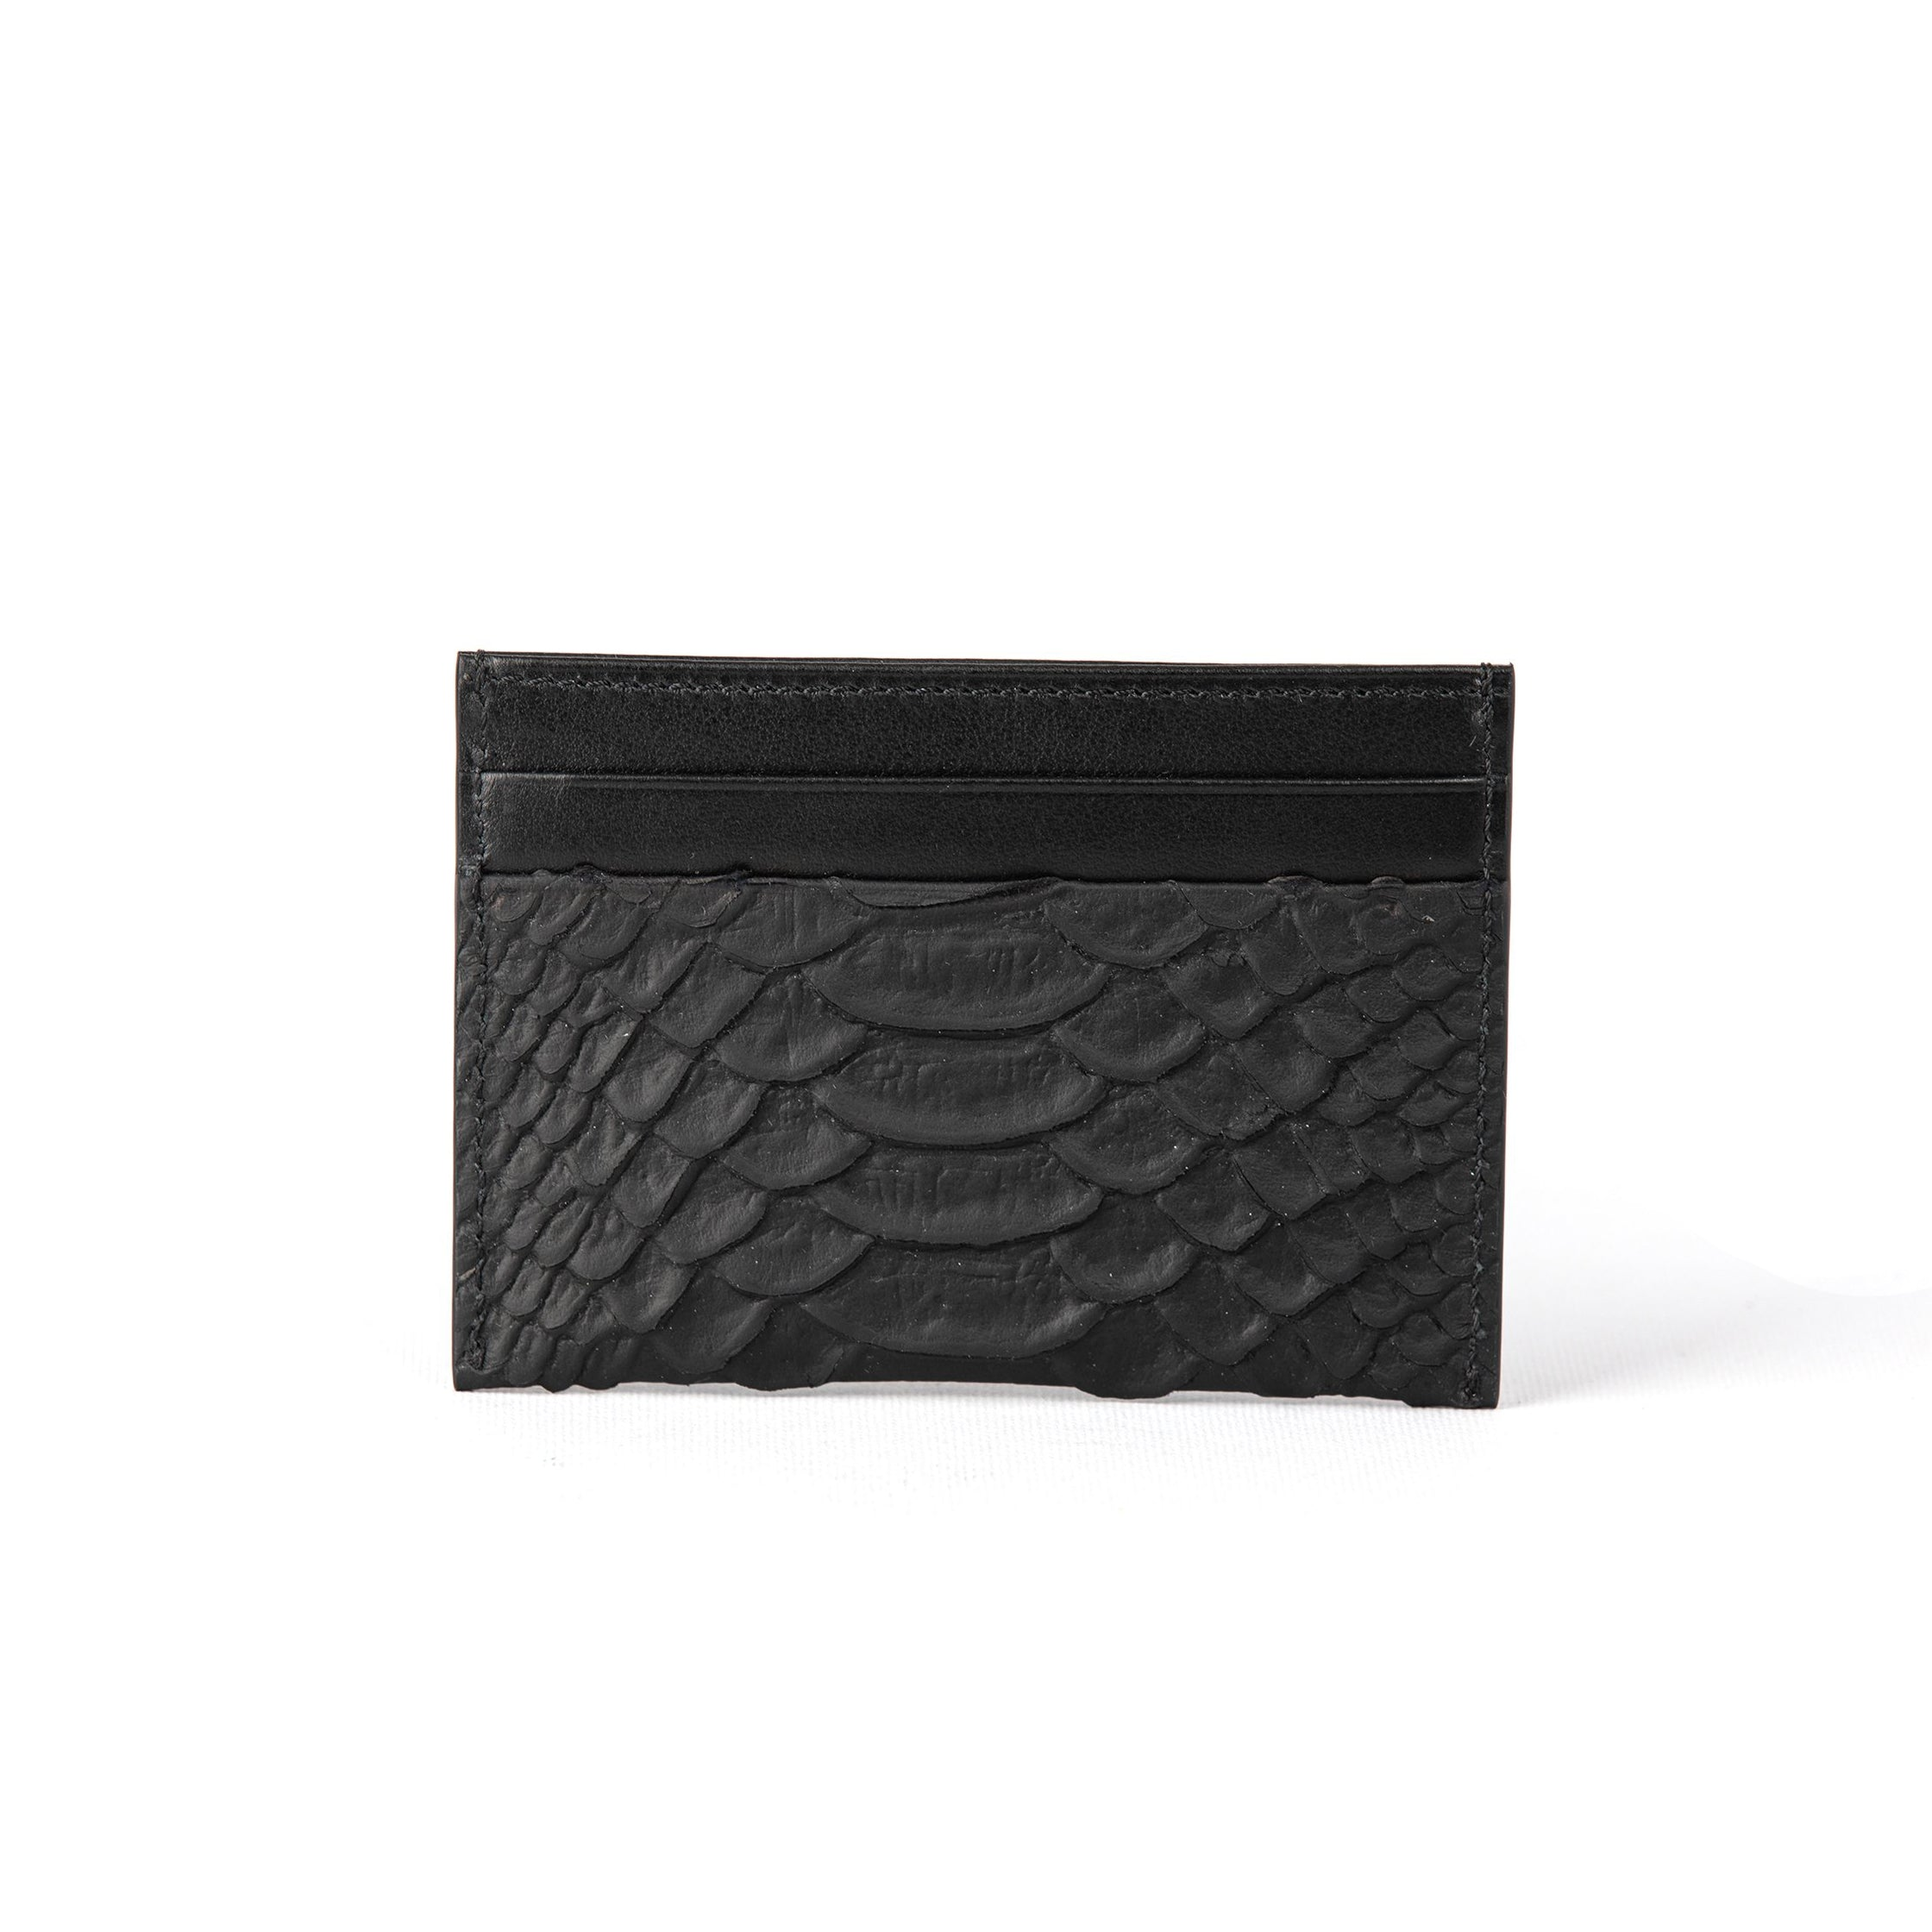 Black Matt Croco Credit Card Holder (FP106)